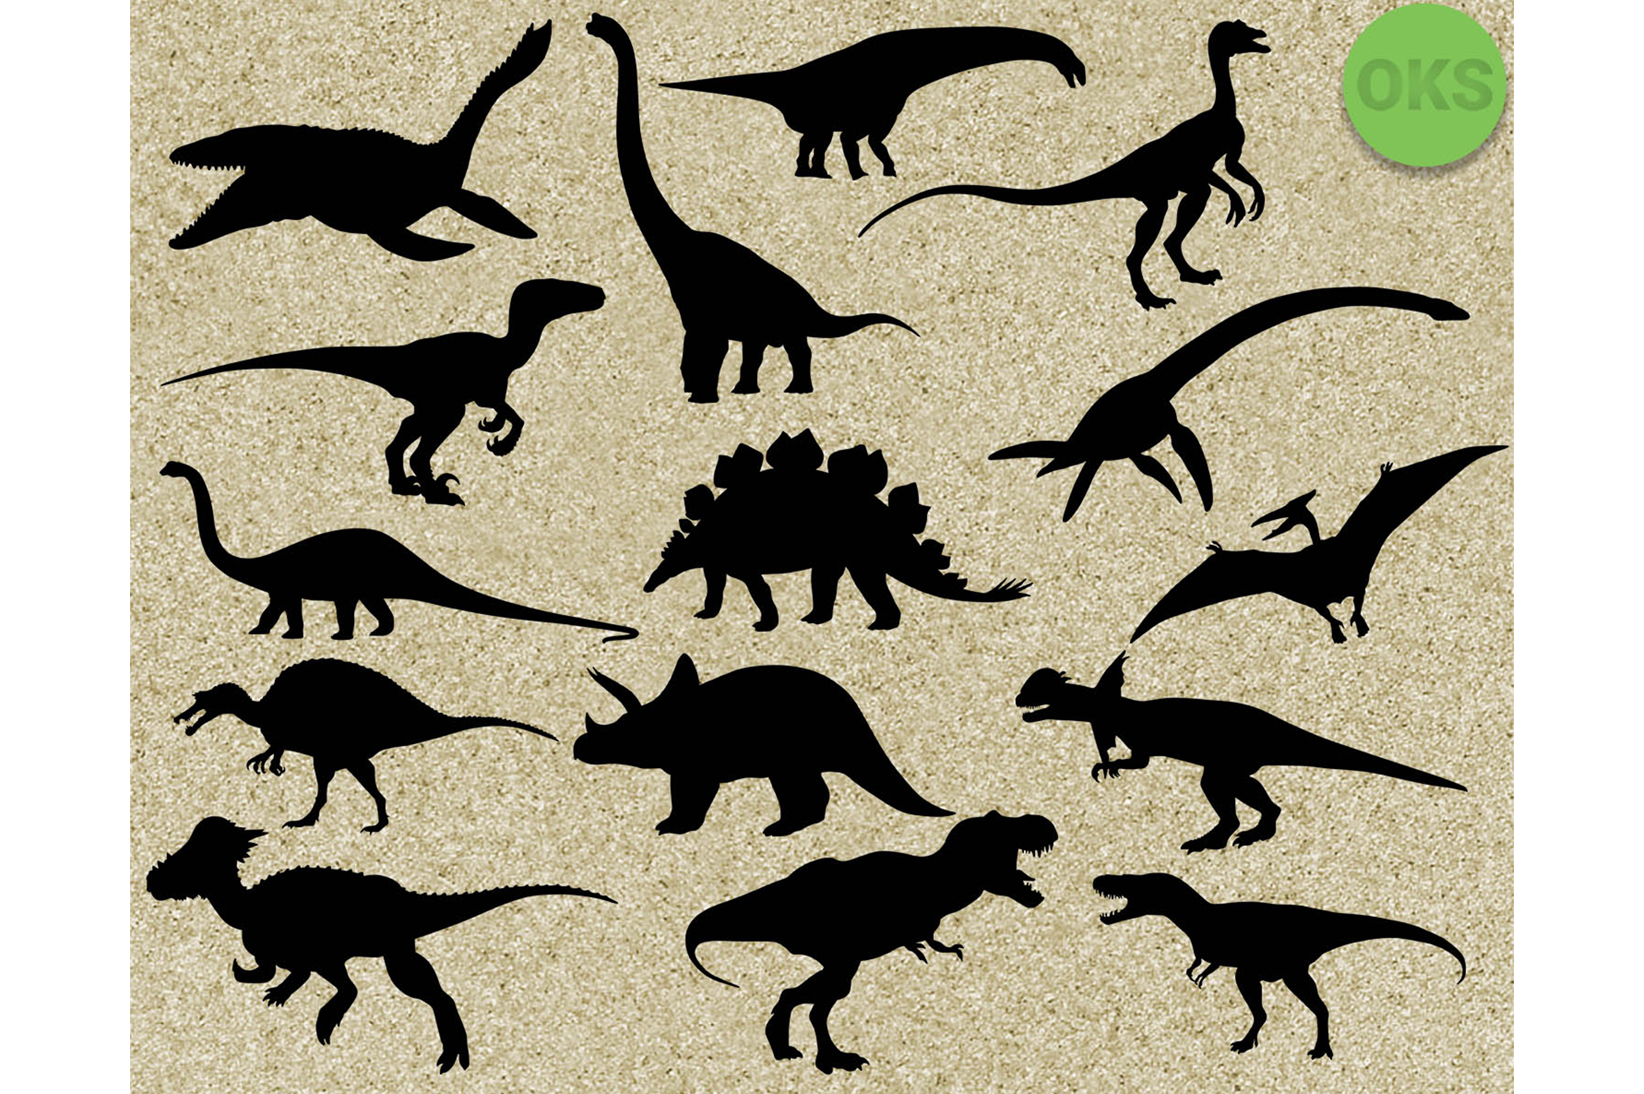 Download Free Dinosaur Files Graphic By Crafteroks Creative Fabrica for Cricut Explore, Silhouette and other cutting machines.